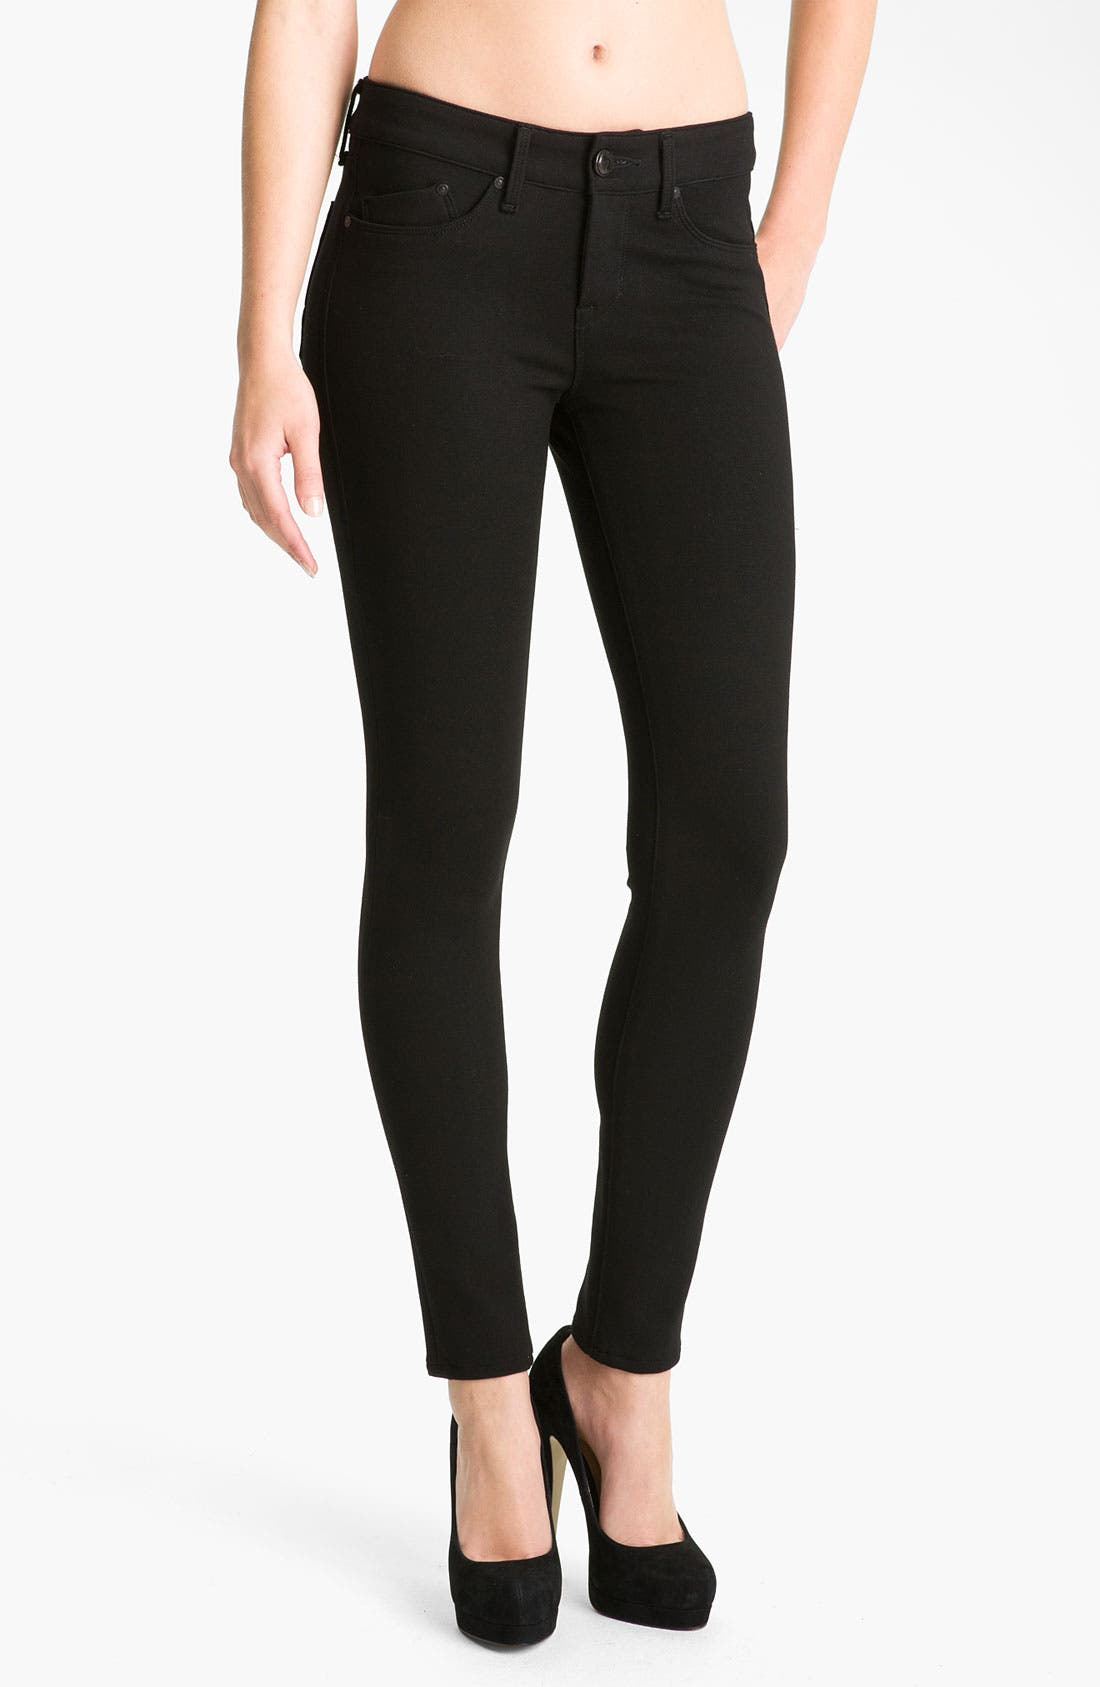 Alternate Image 1 Selected - Dylan George 'Runway' Mid Rise Stretch Knit Leggings